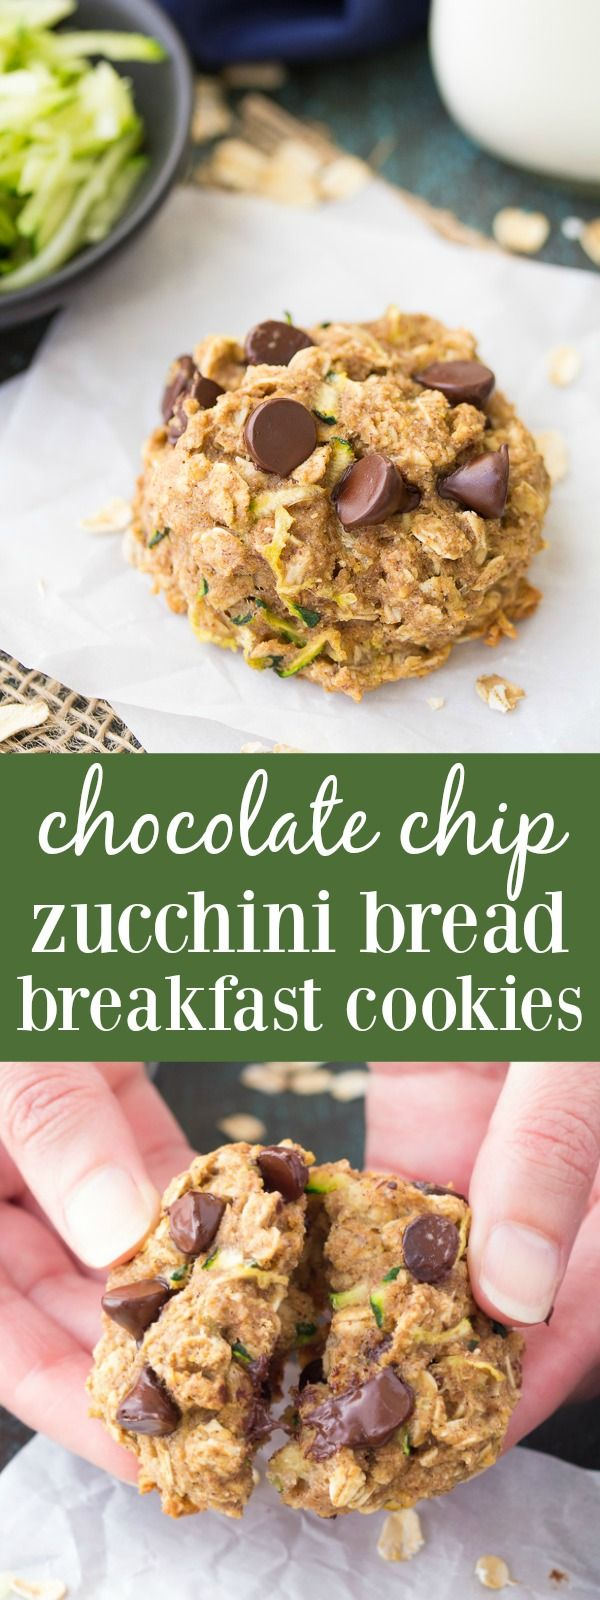 These healthy Chocolate Chip Zucchini Bread Breakfast Cookies are a super yummy make-ahead breakfast or snack! kristineskitchenblog.com